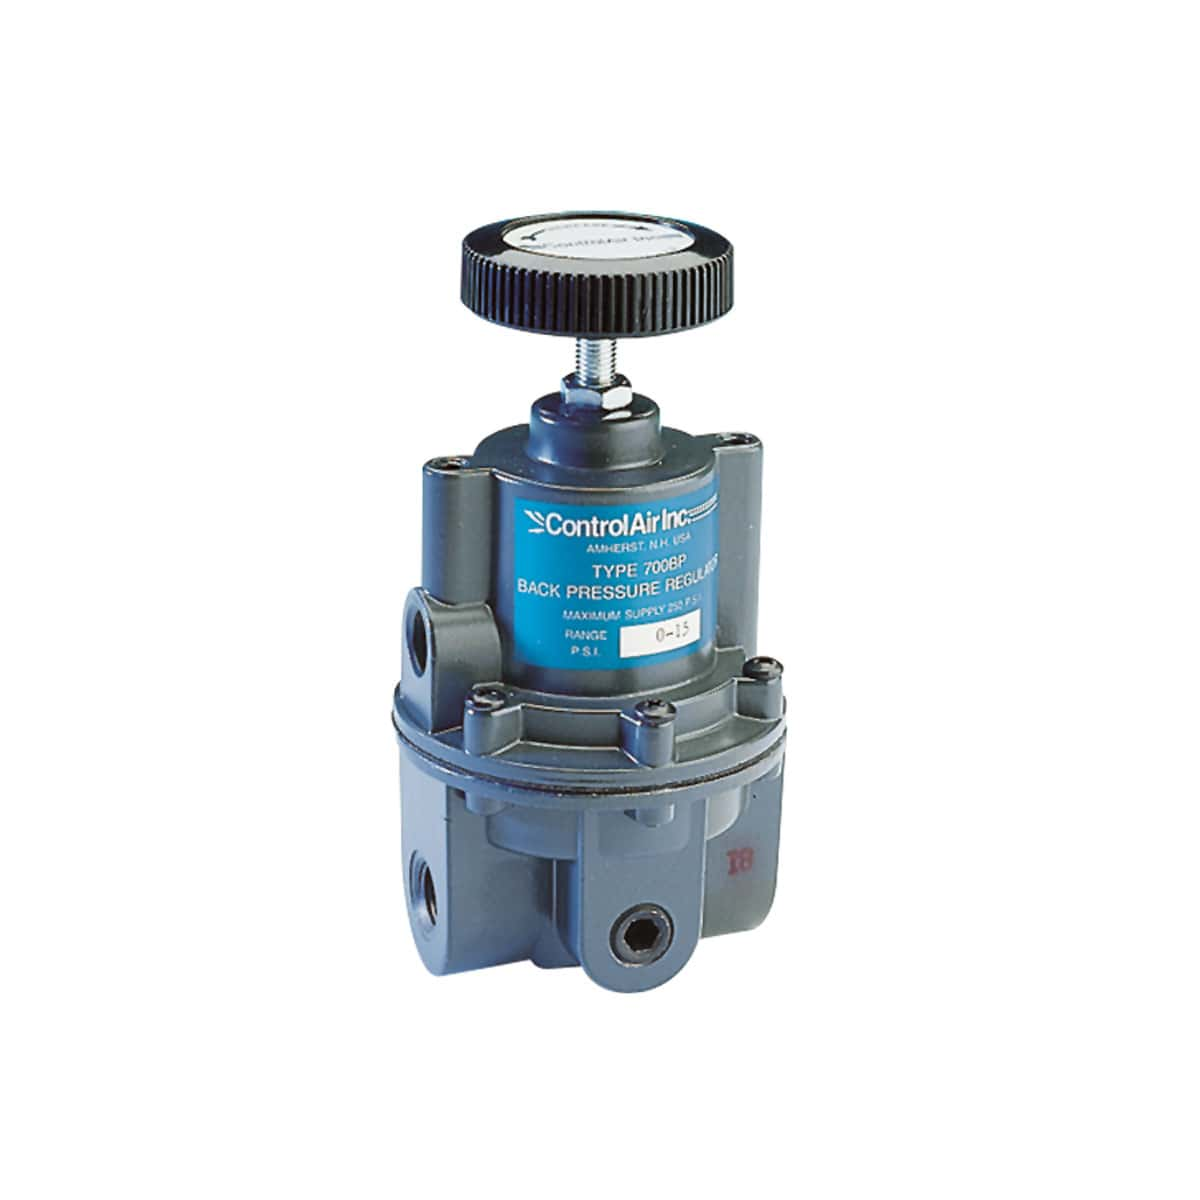 Picture of: What Is A Back Pressure Regulator Controlair